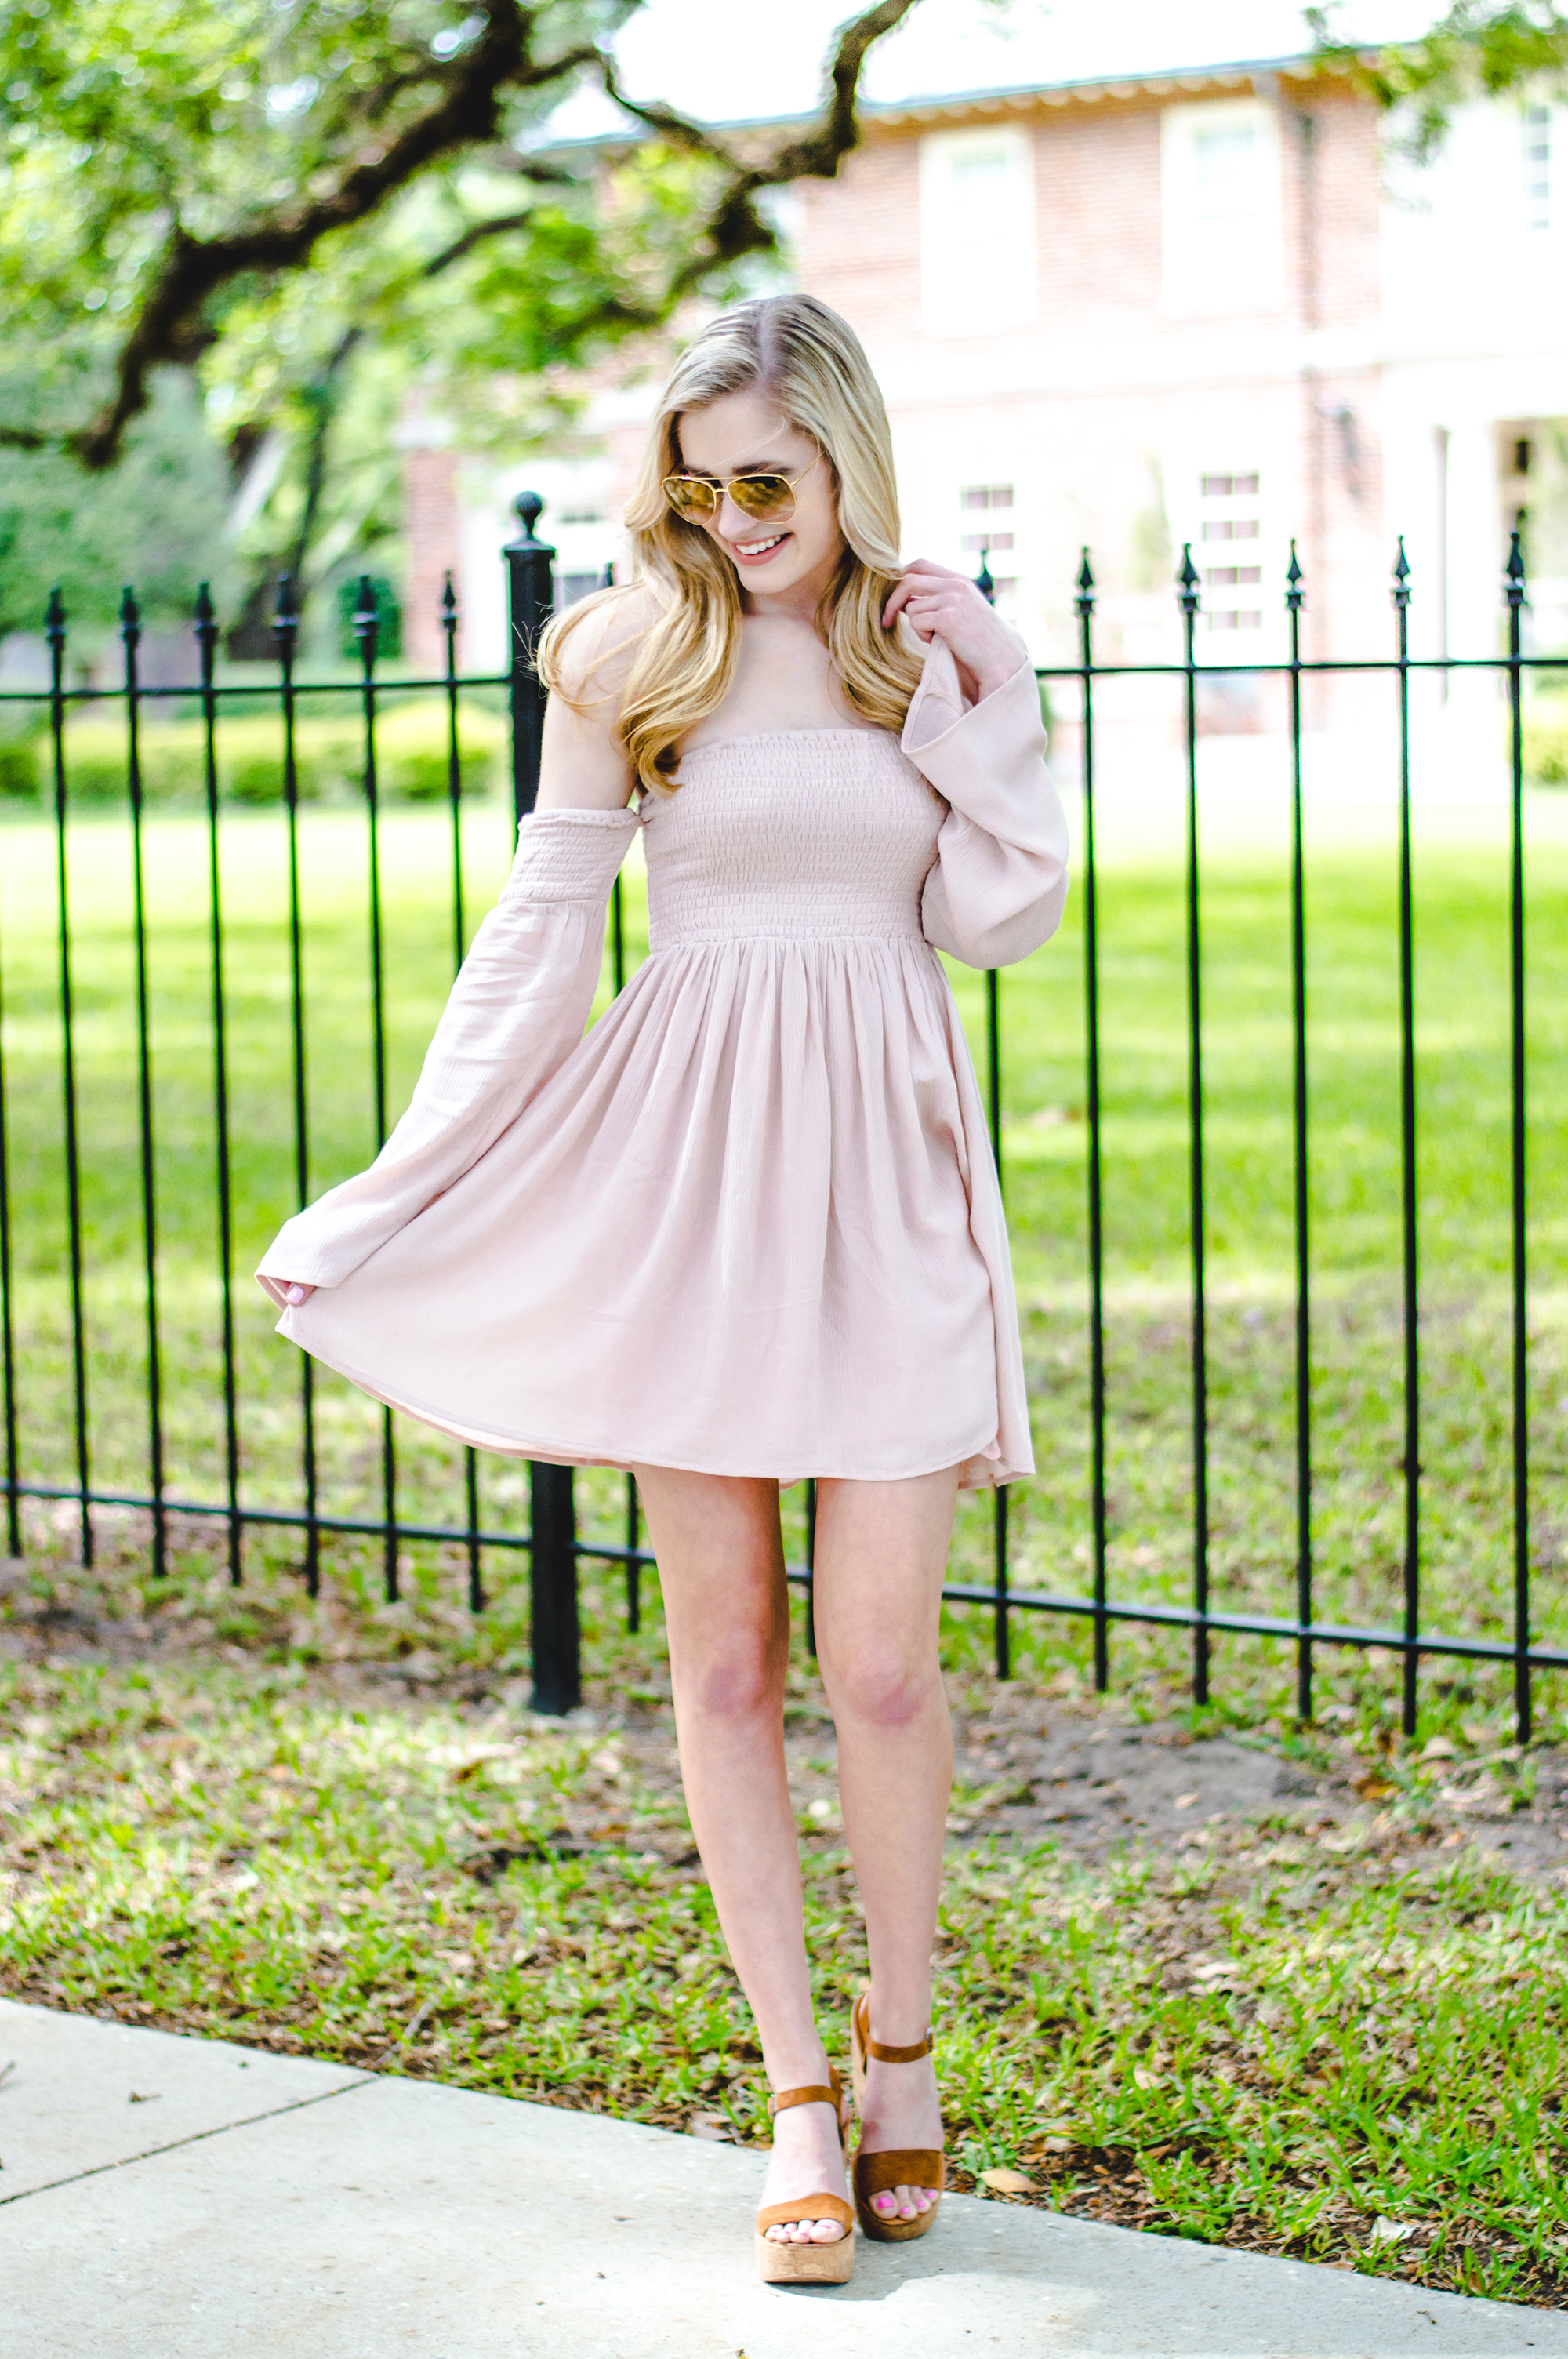 styelled-blog-elle-elisabeth-fashion-style-blogger-florida-tobi-clothing-sundress-blush-dress-burberry-sunglasses-aviator-dolce-vita-05